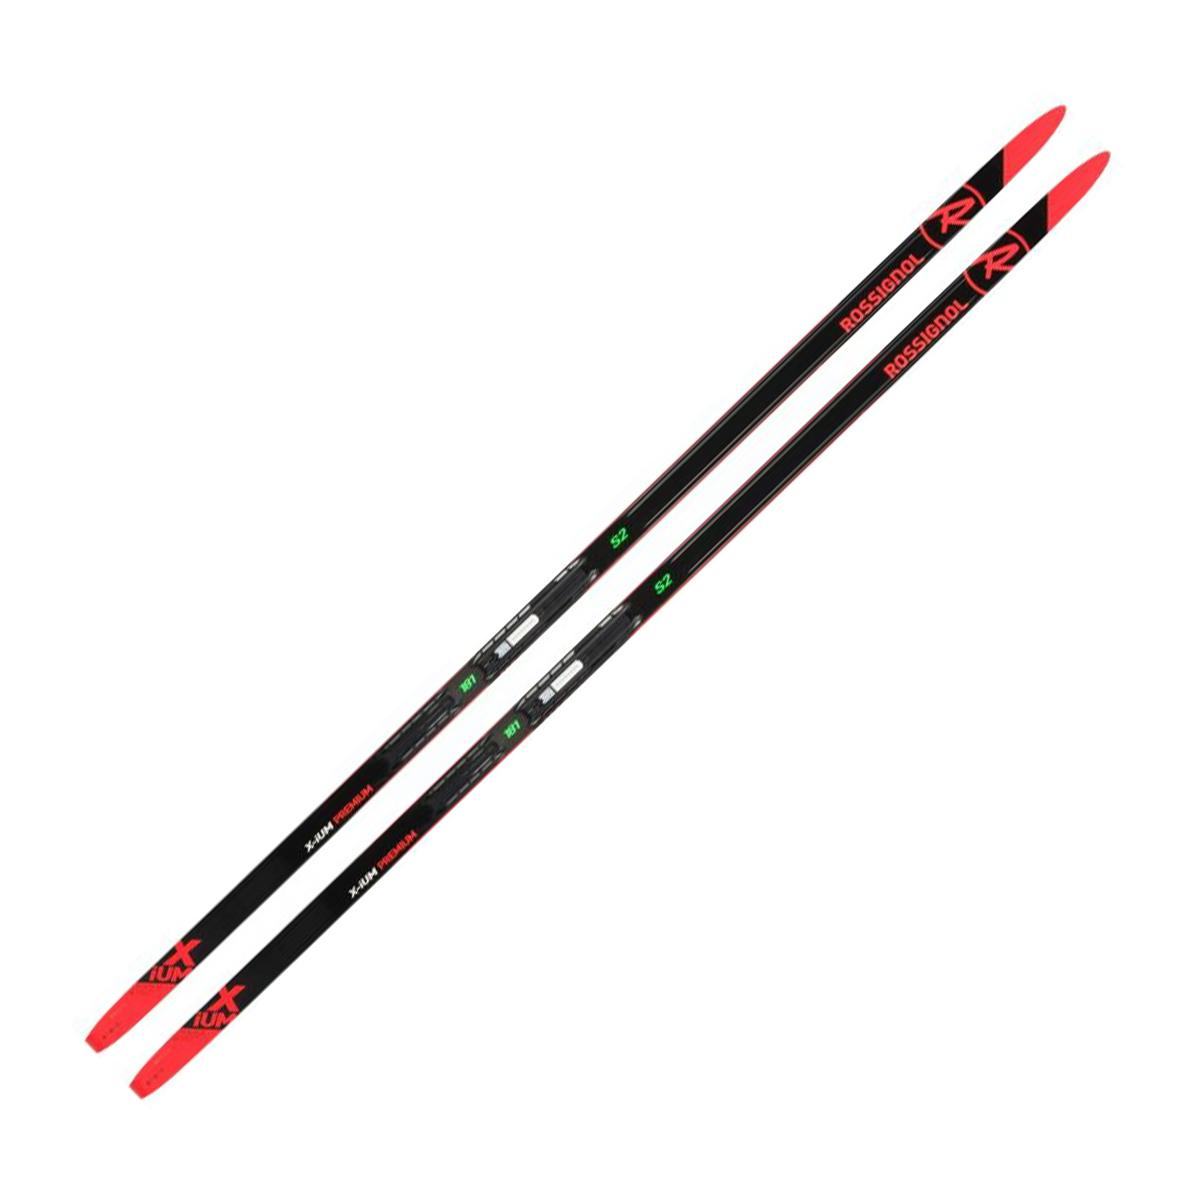 Rossignol X-Ium Premium Skating S2 IFP Ski in Black and Red